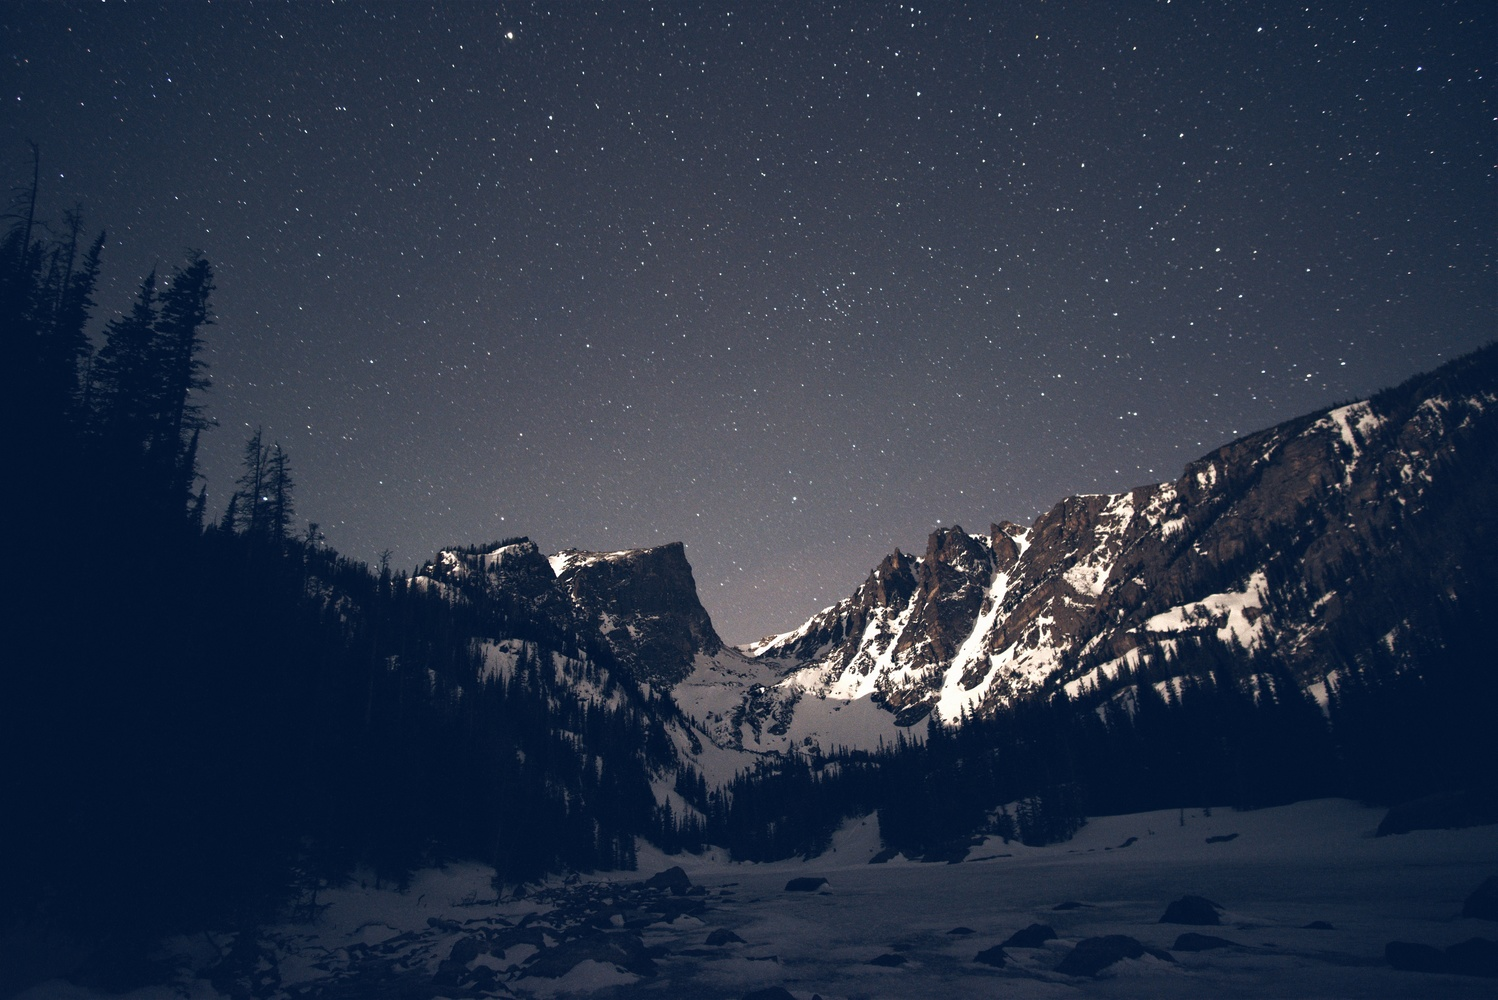 Dream Lake at Night by Will Hoyer